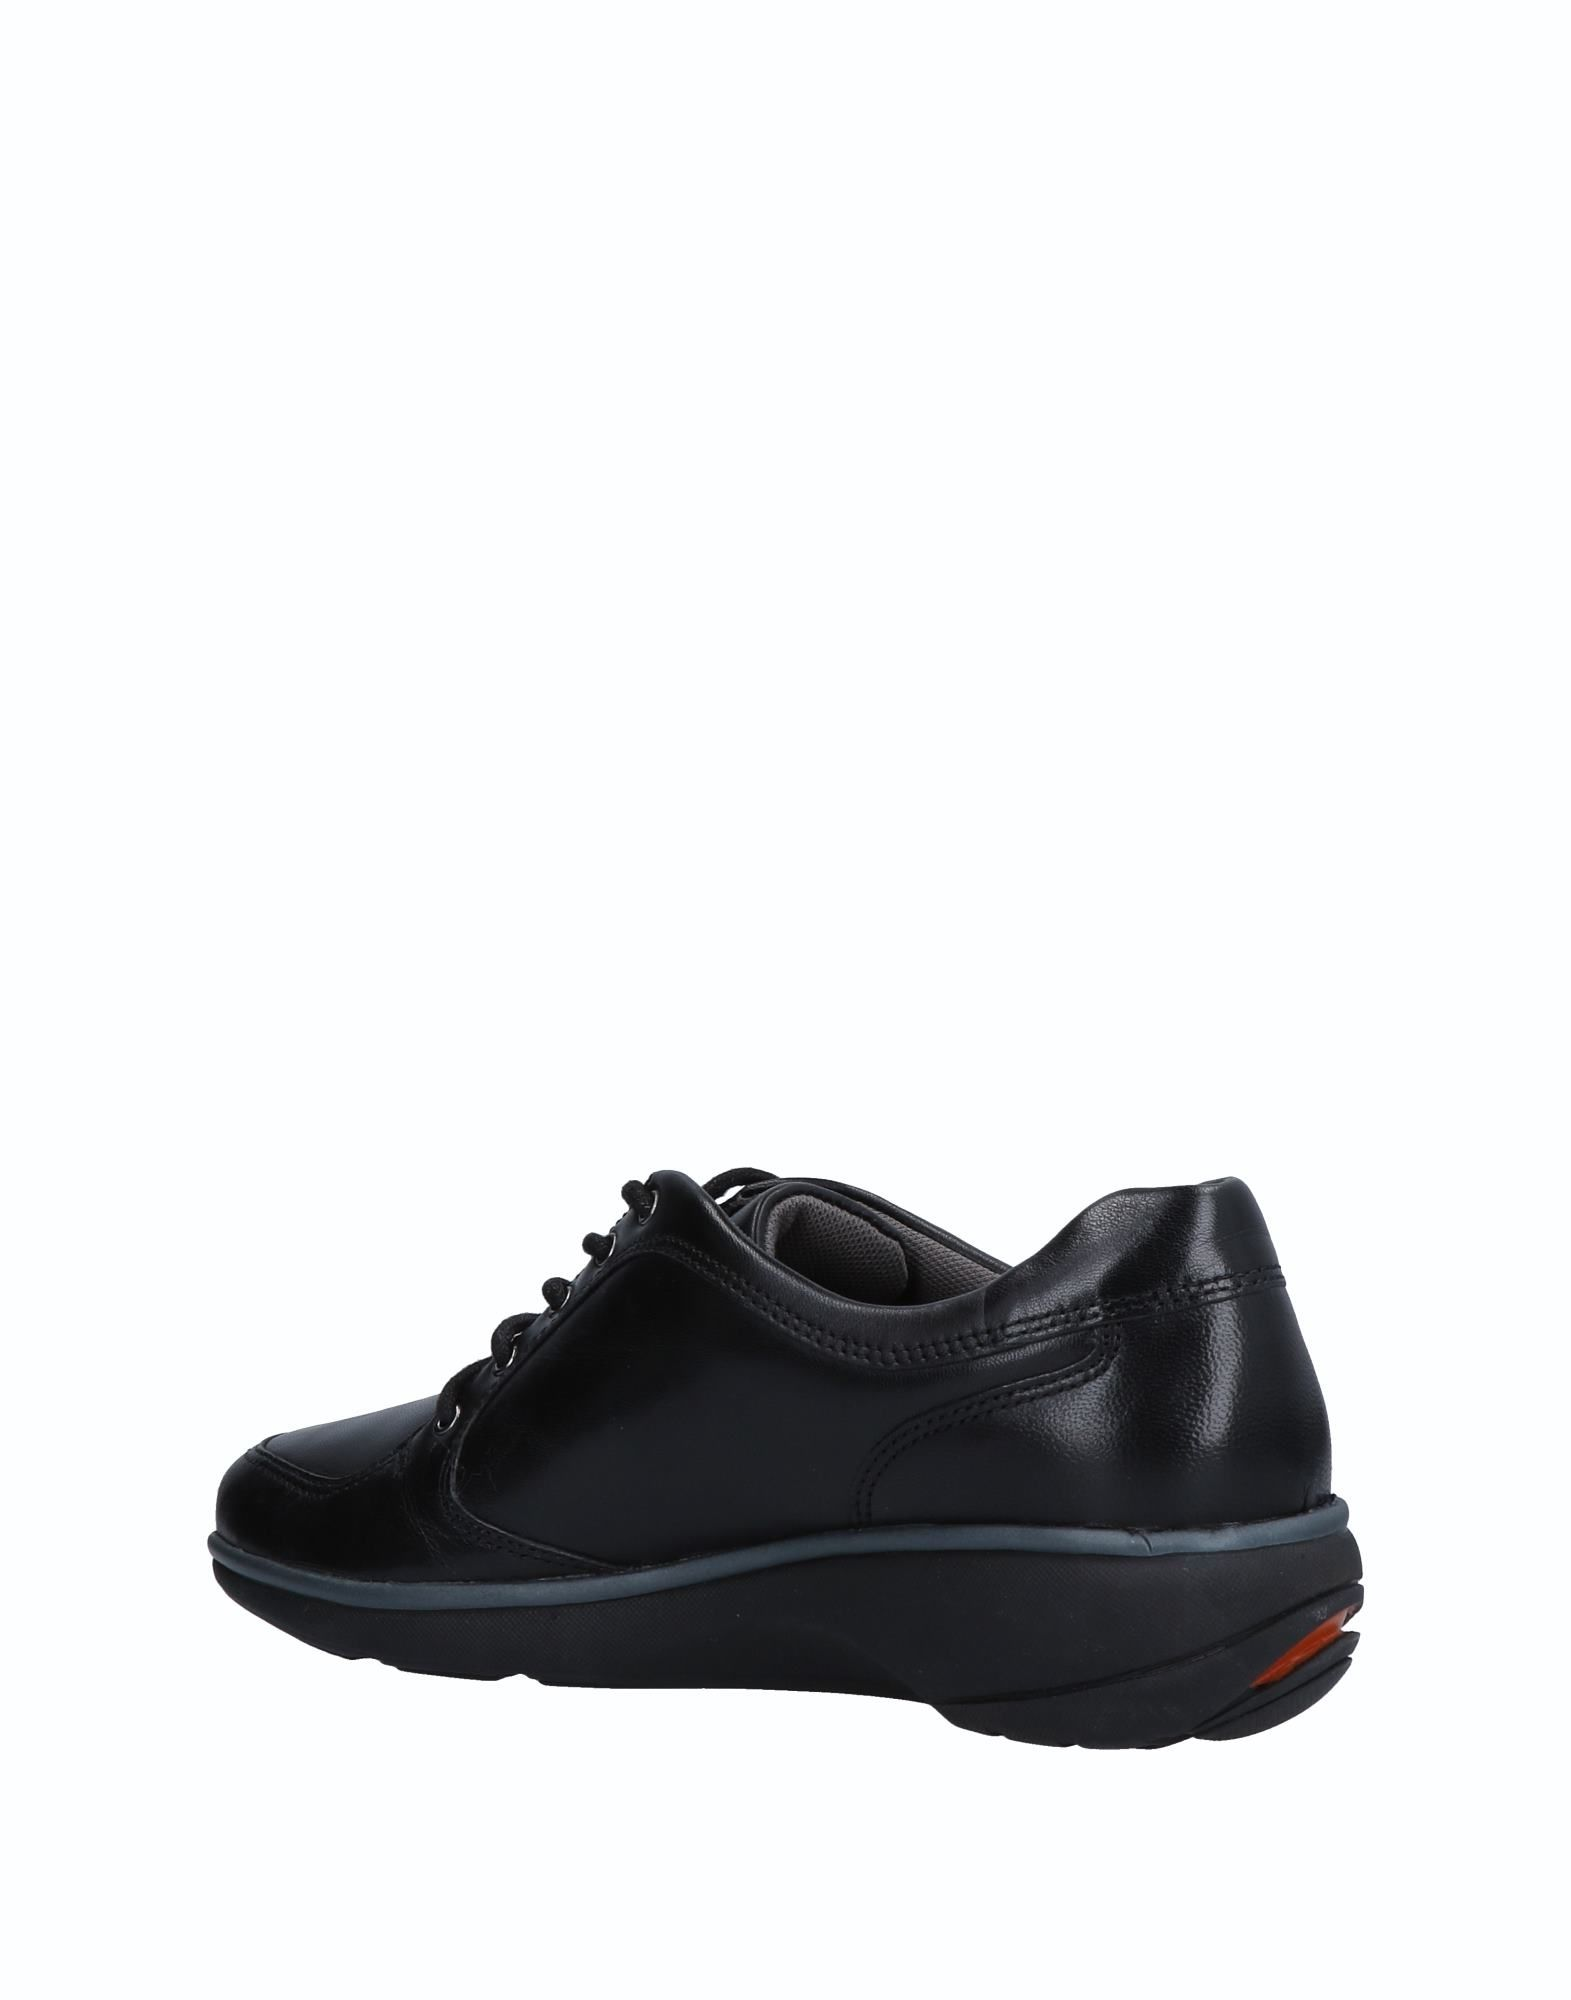 Rockport Sneakers - Women Women Women Rockport Sneakers online on  Canada - 11509294QN d1792c